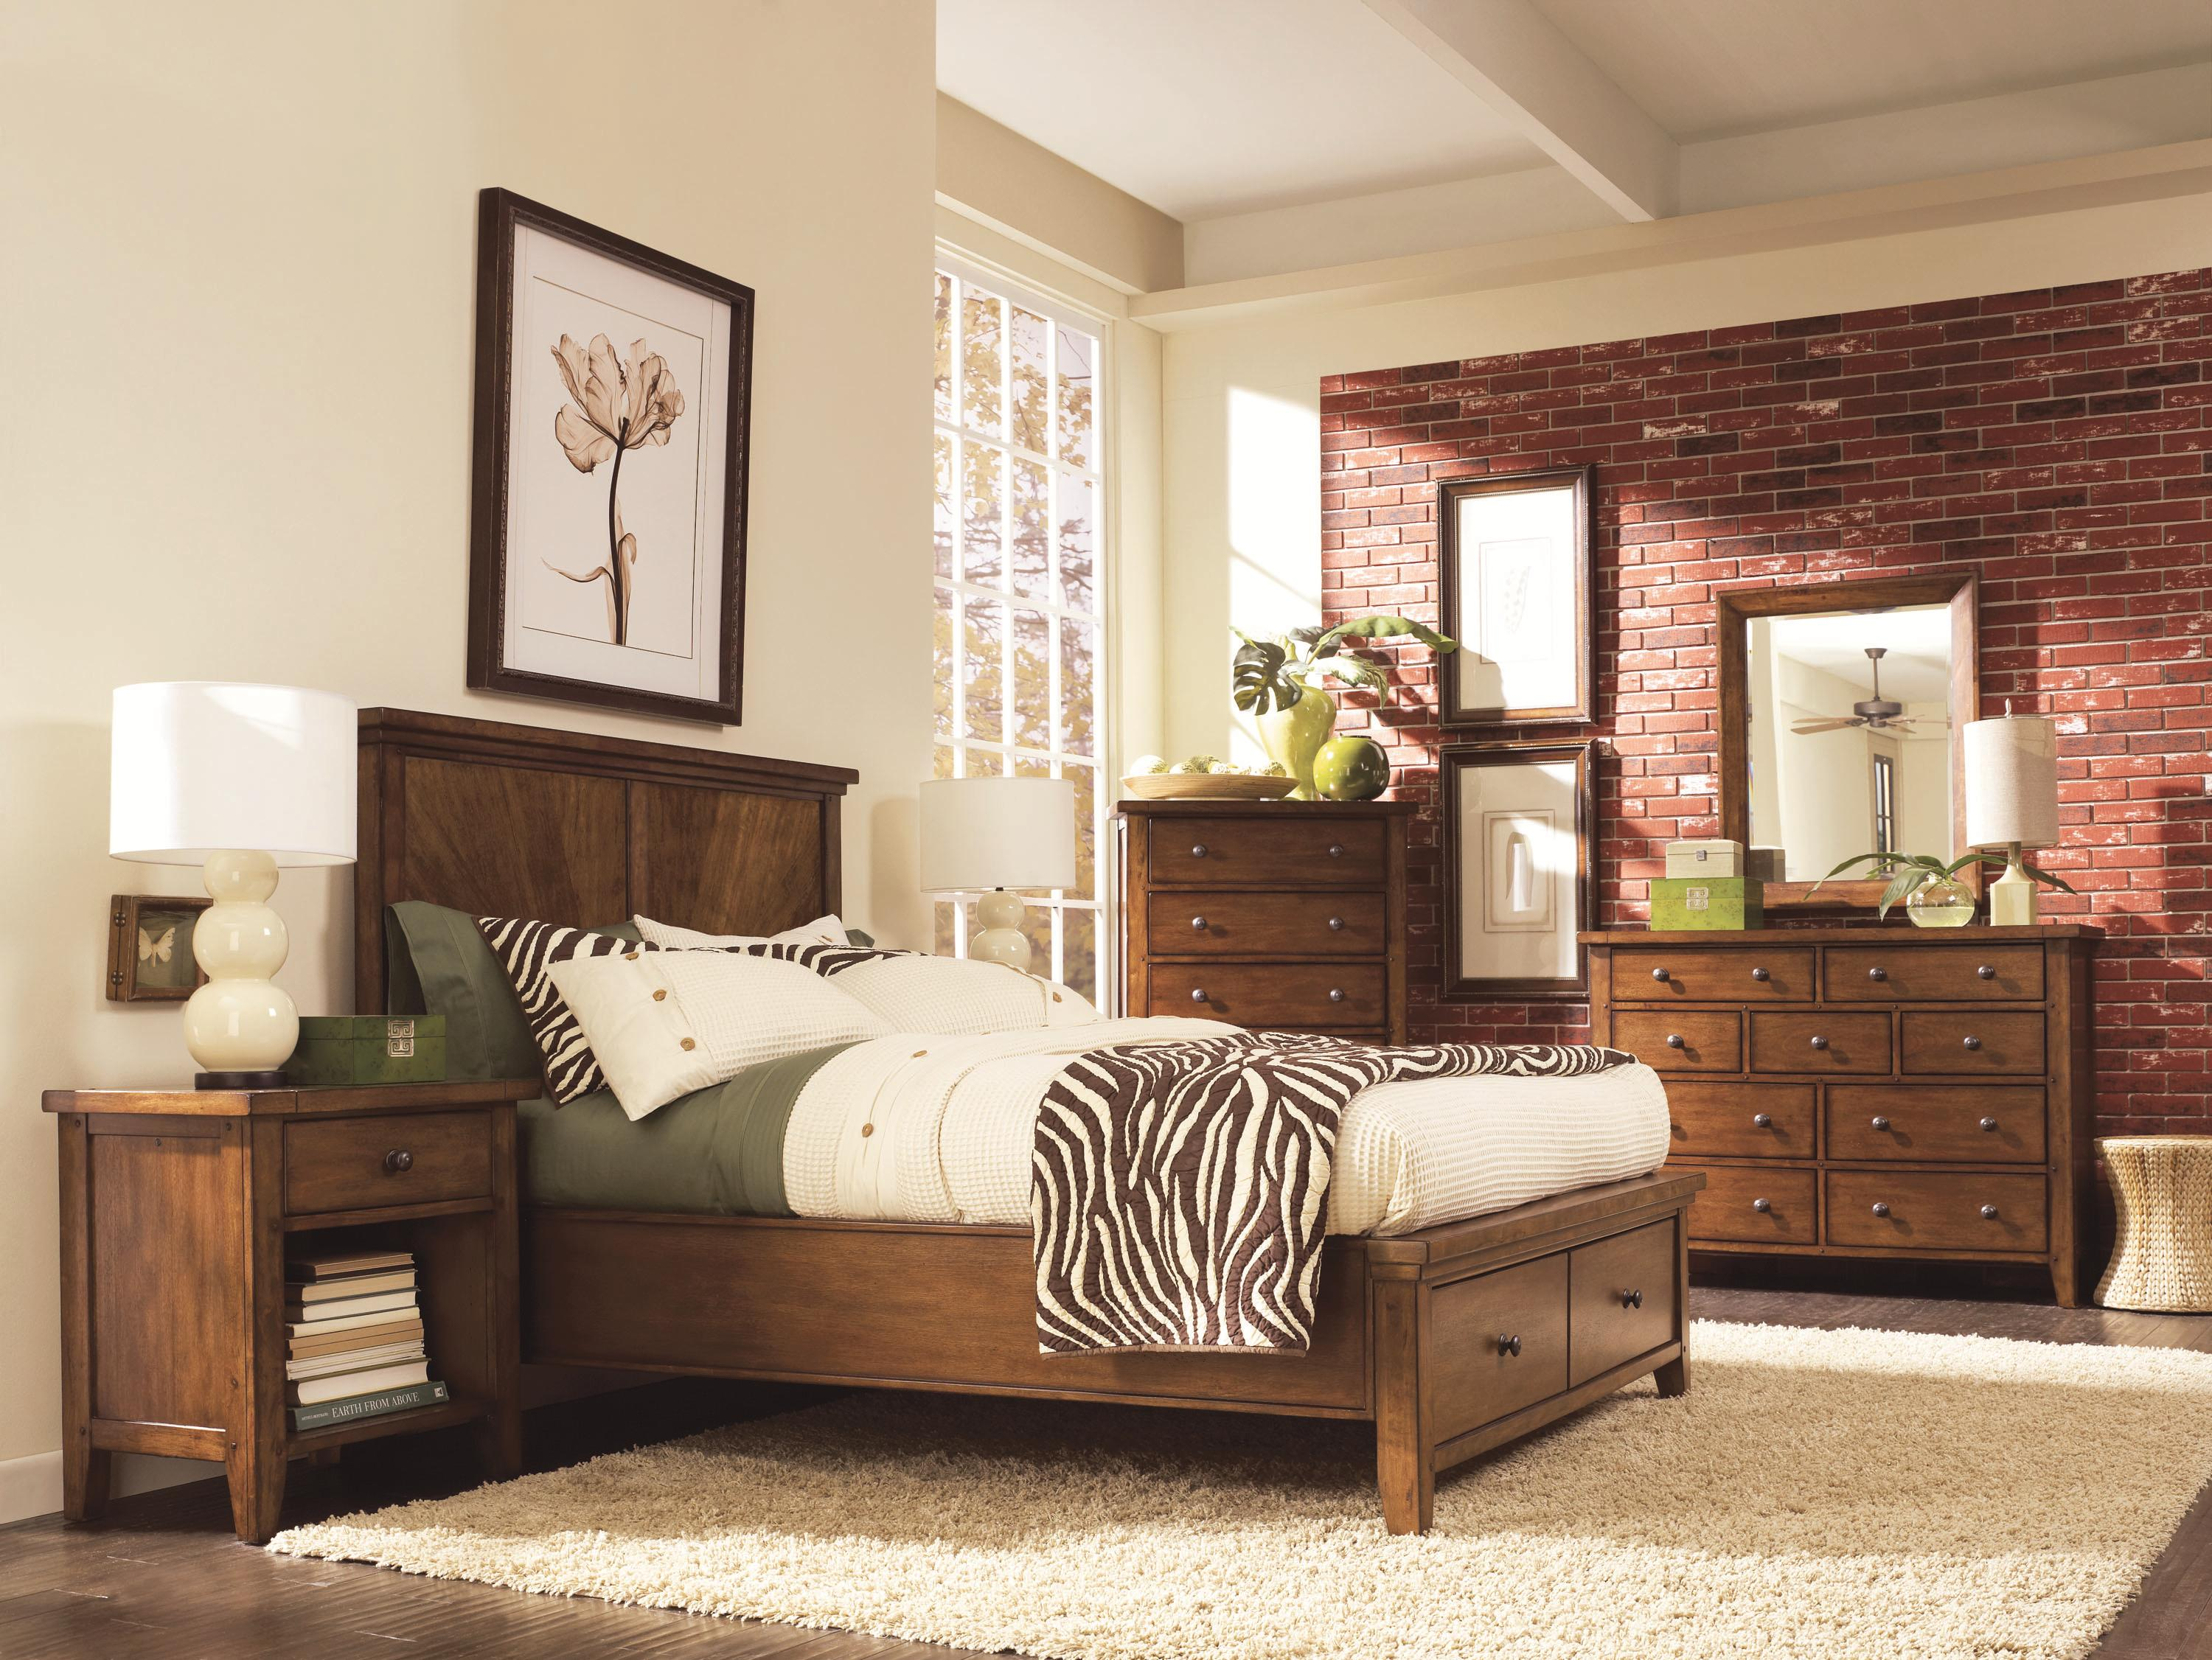 Aspenhome Cross Country California King Bedroom Group - Item Number: IMR CK Bedroom Group 1